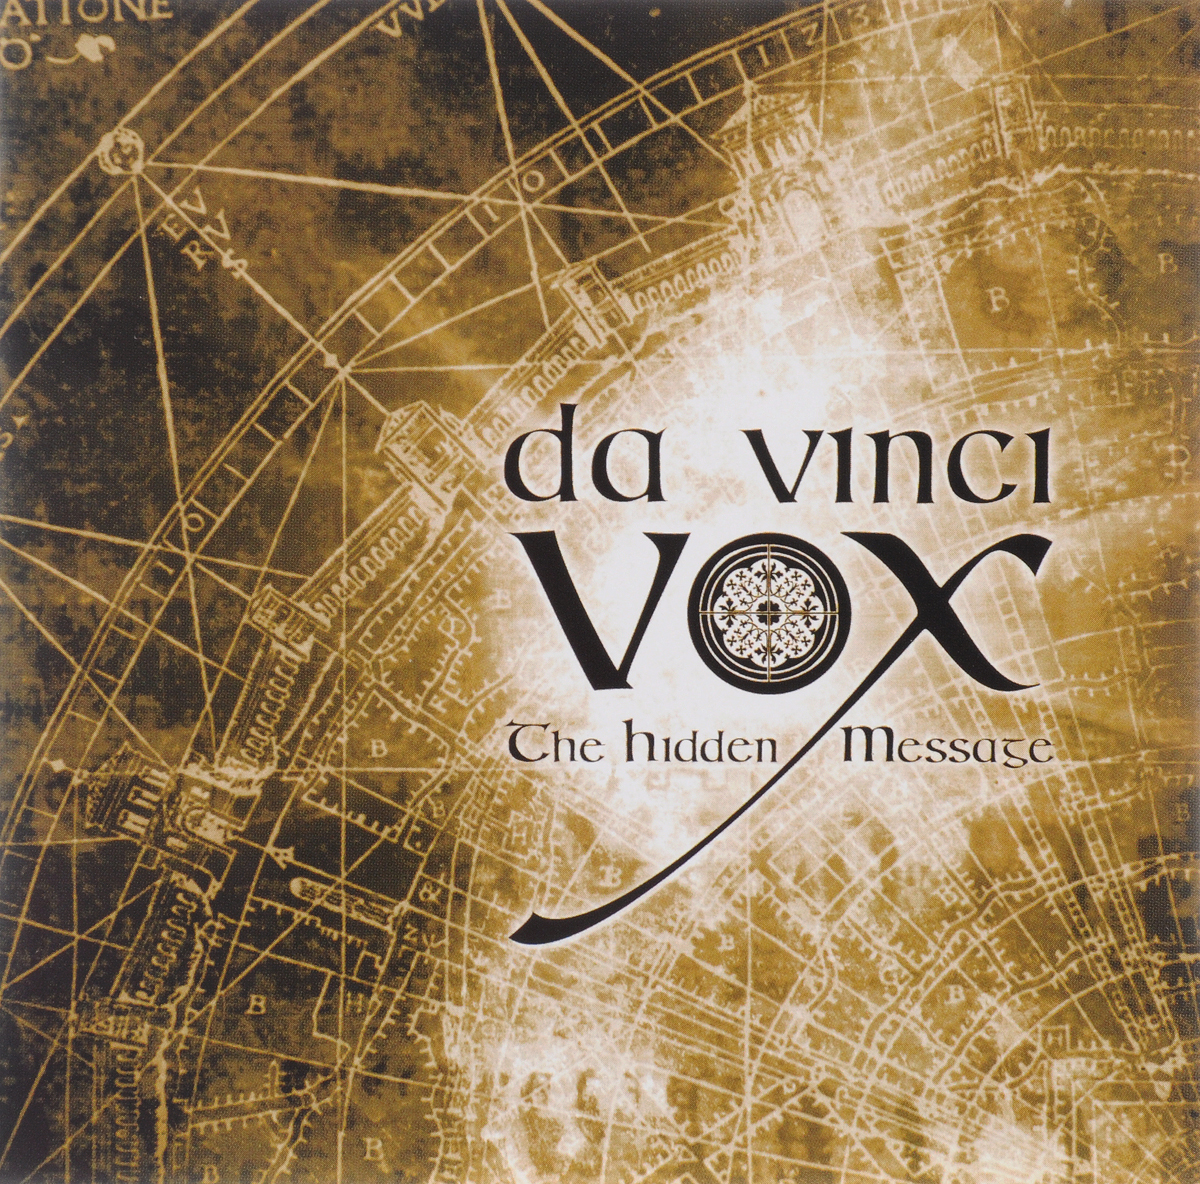 Da Vinci Vox DA VINCI VOX. THE HIDDEN MESSAGE vox mv50 clean